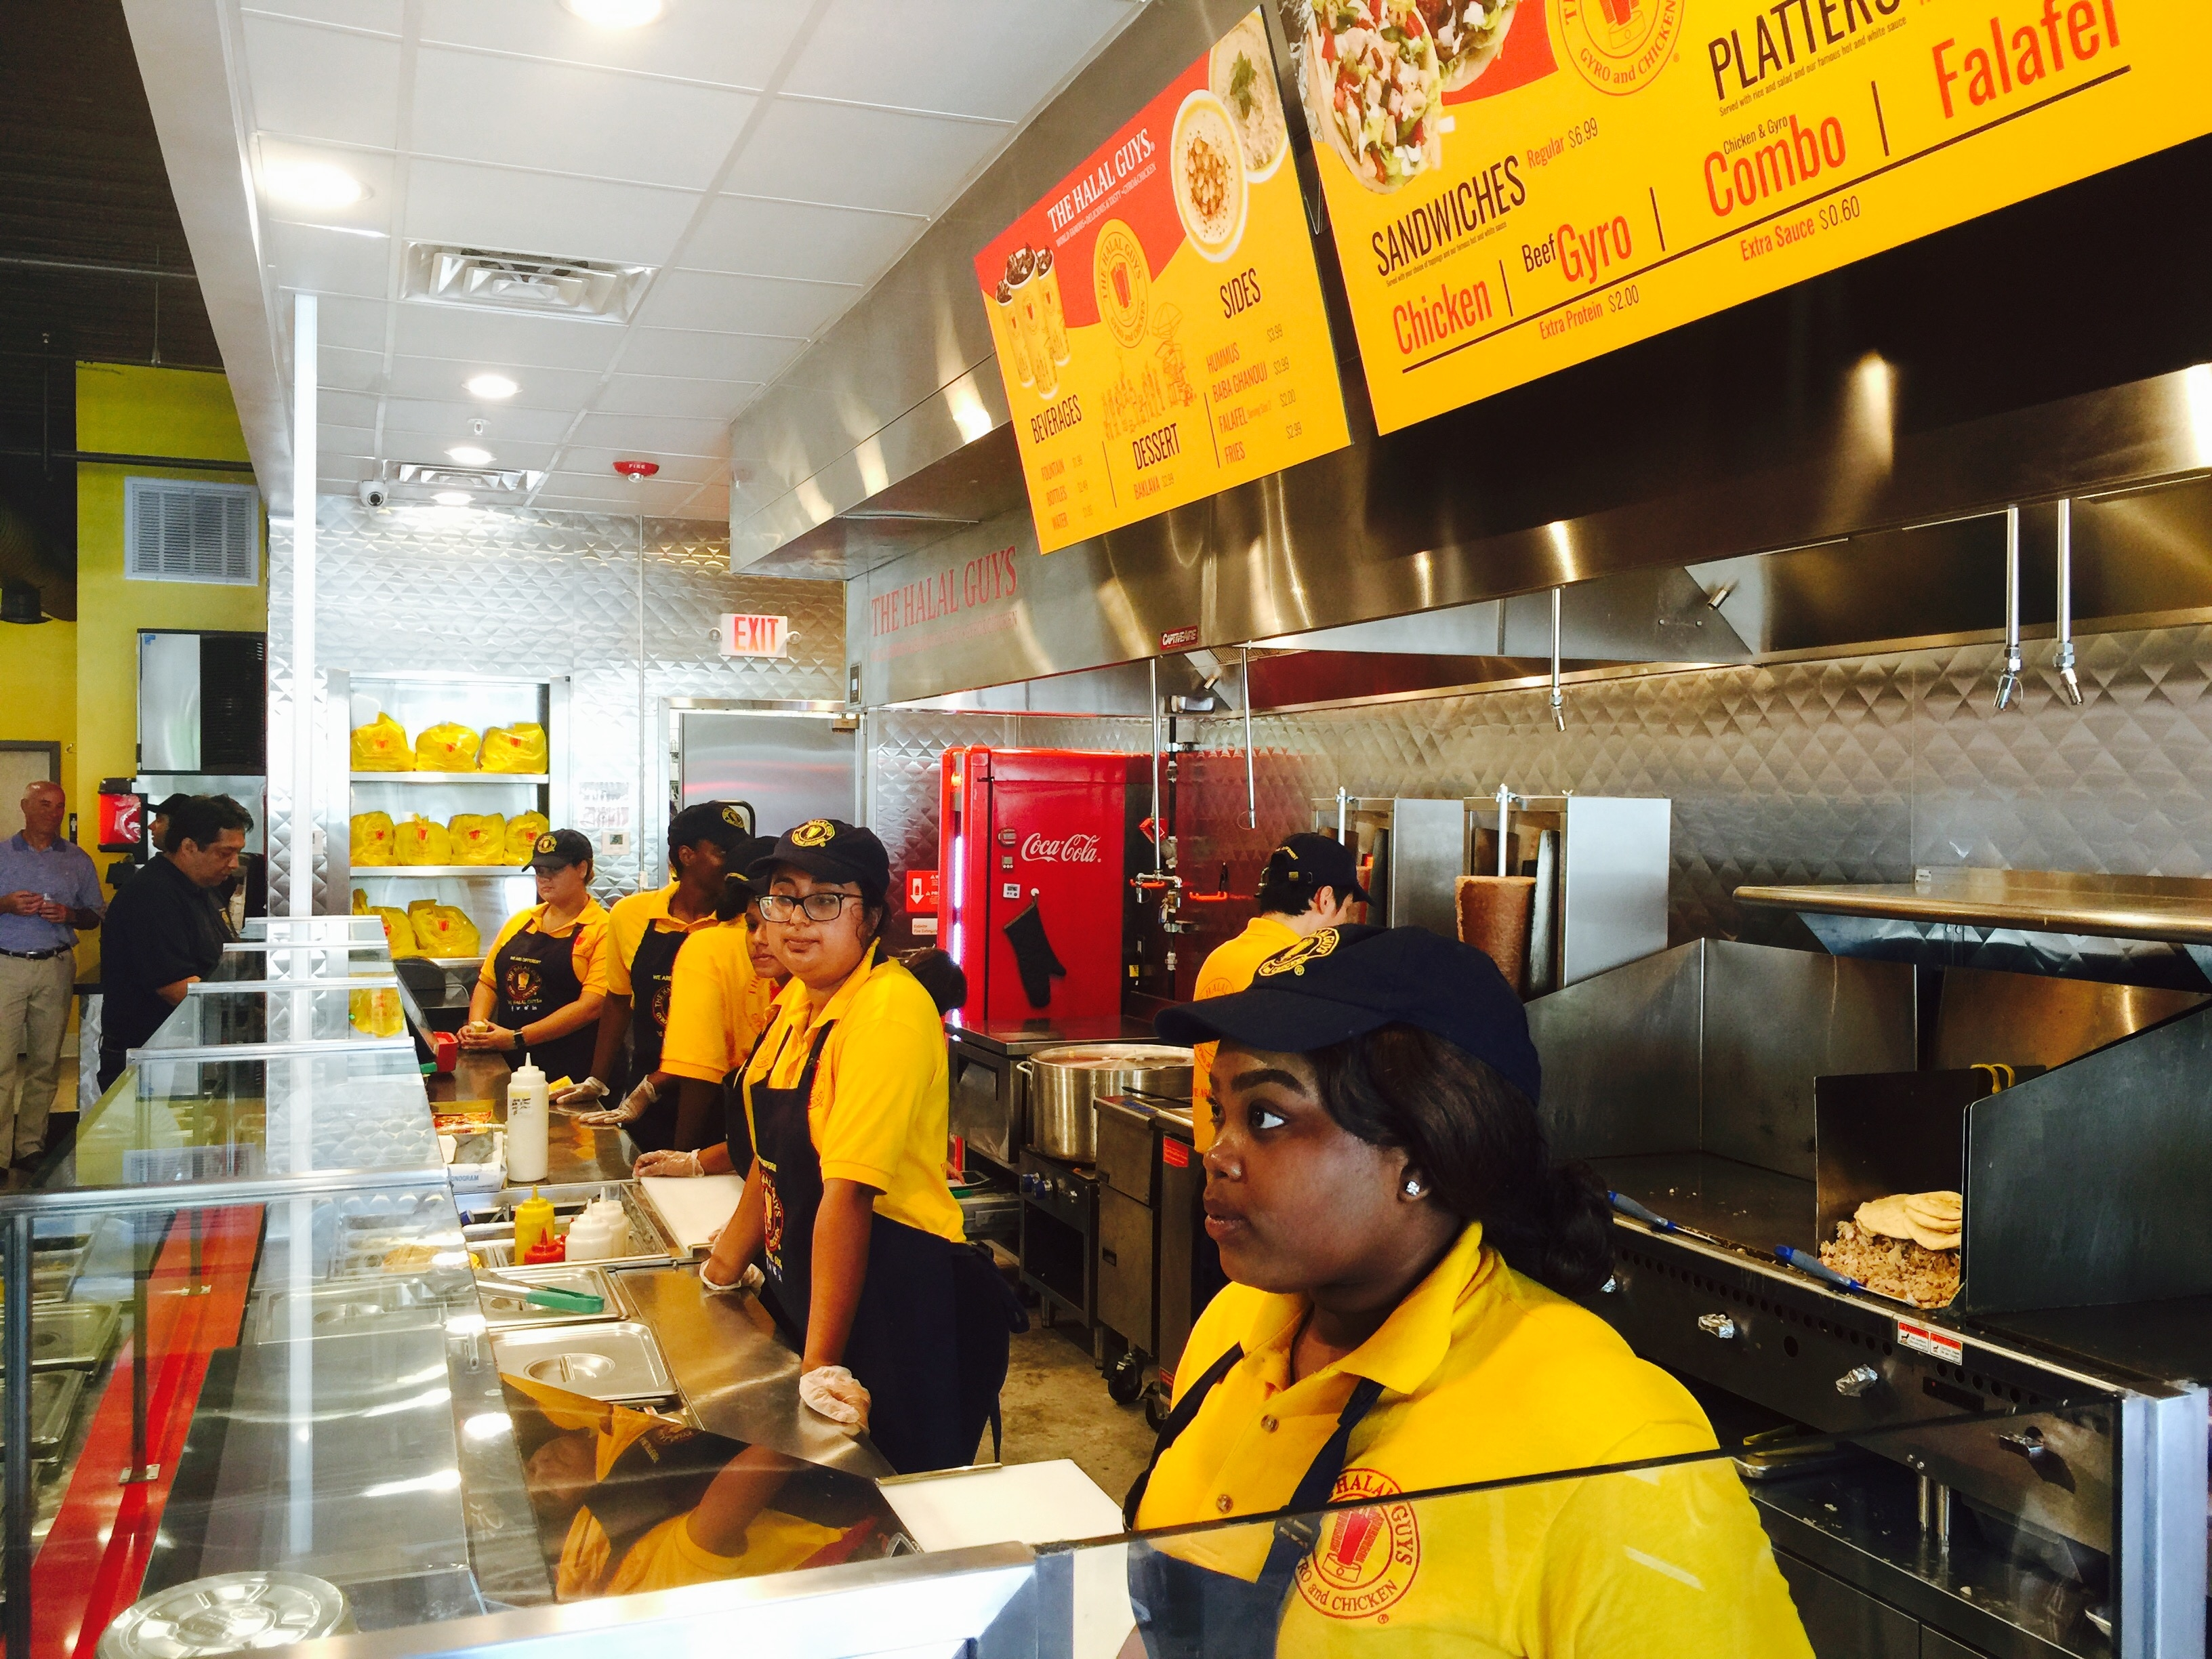 The Halal Guys Is A Middle Eastern Fast Casual Restaurant That Began As Food Cart In 1990 On South East Corner Of 53rd Street And Sixth Avenue